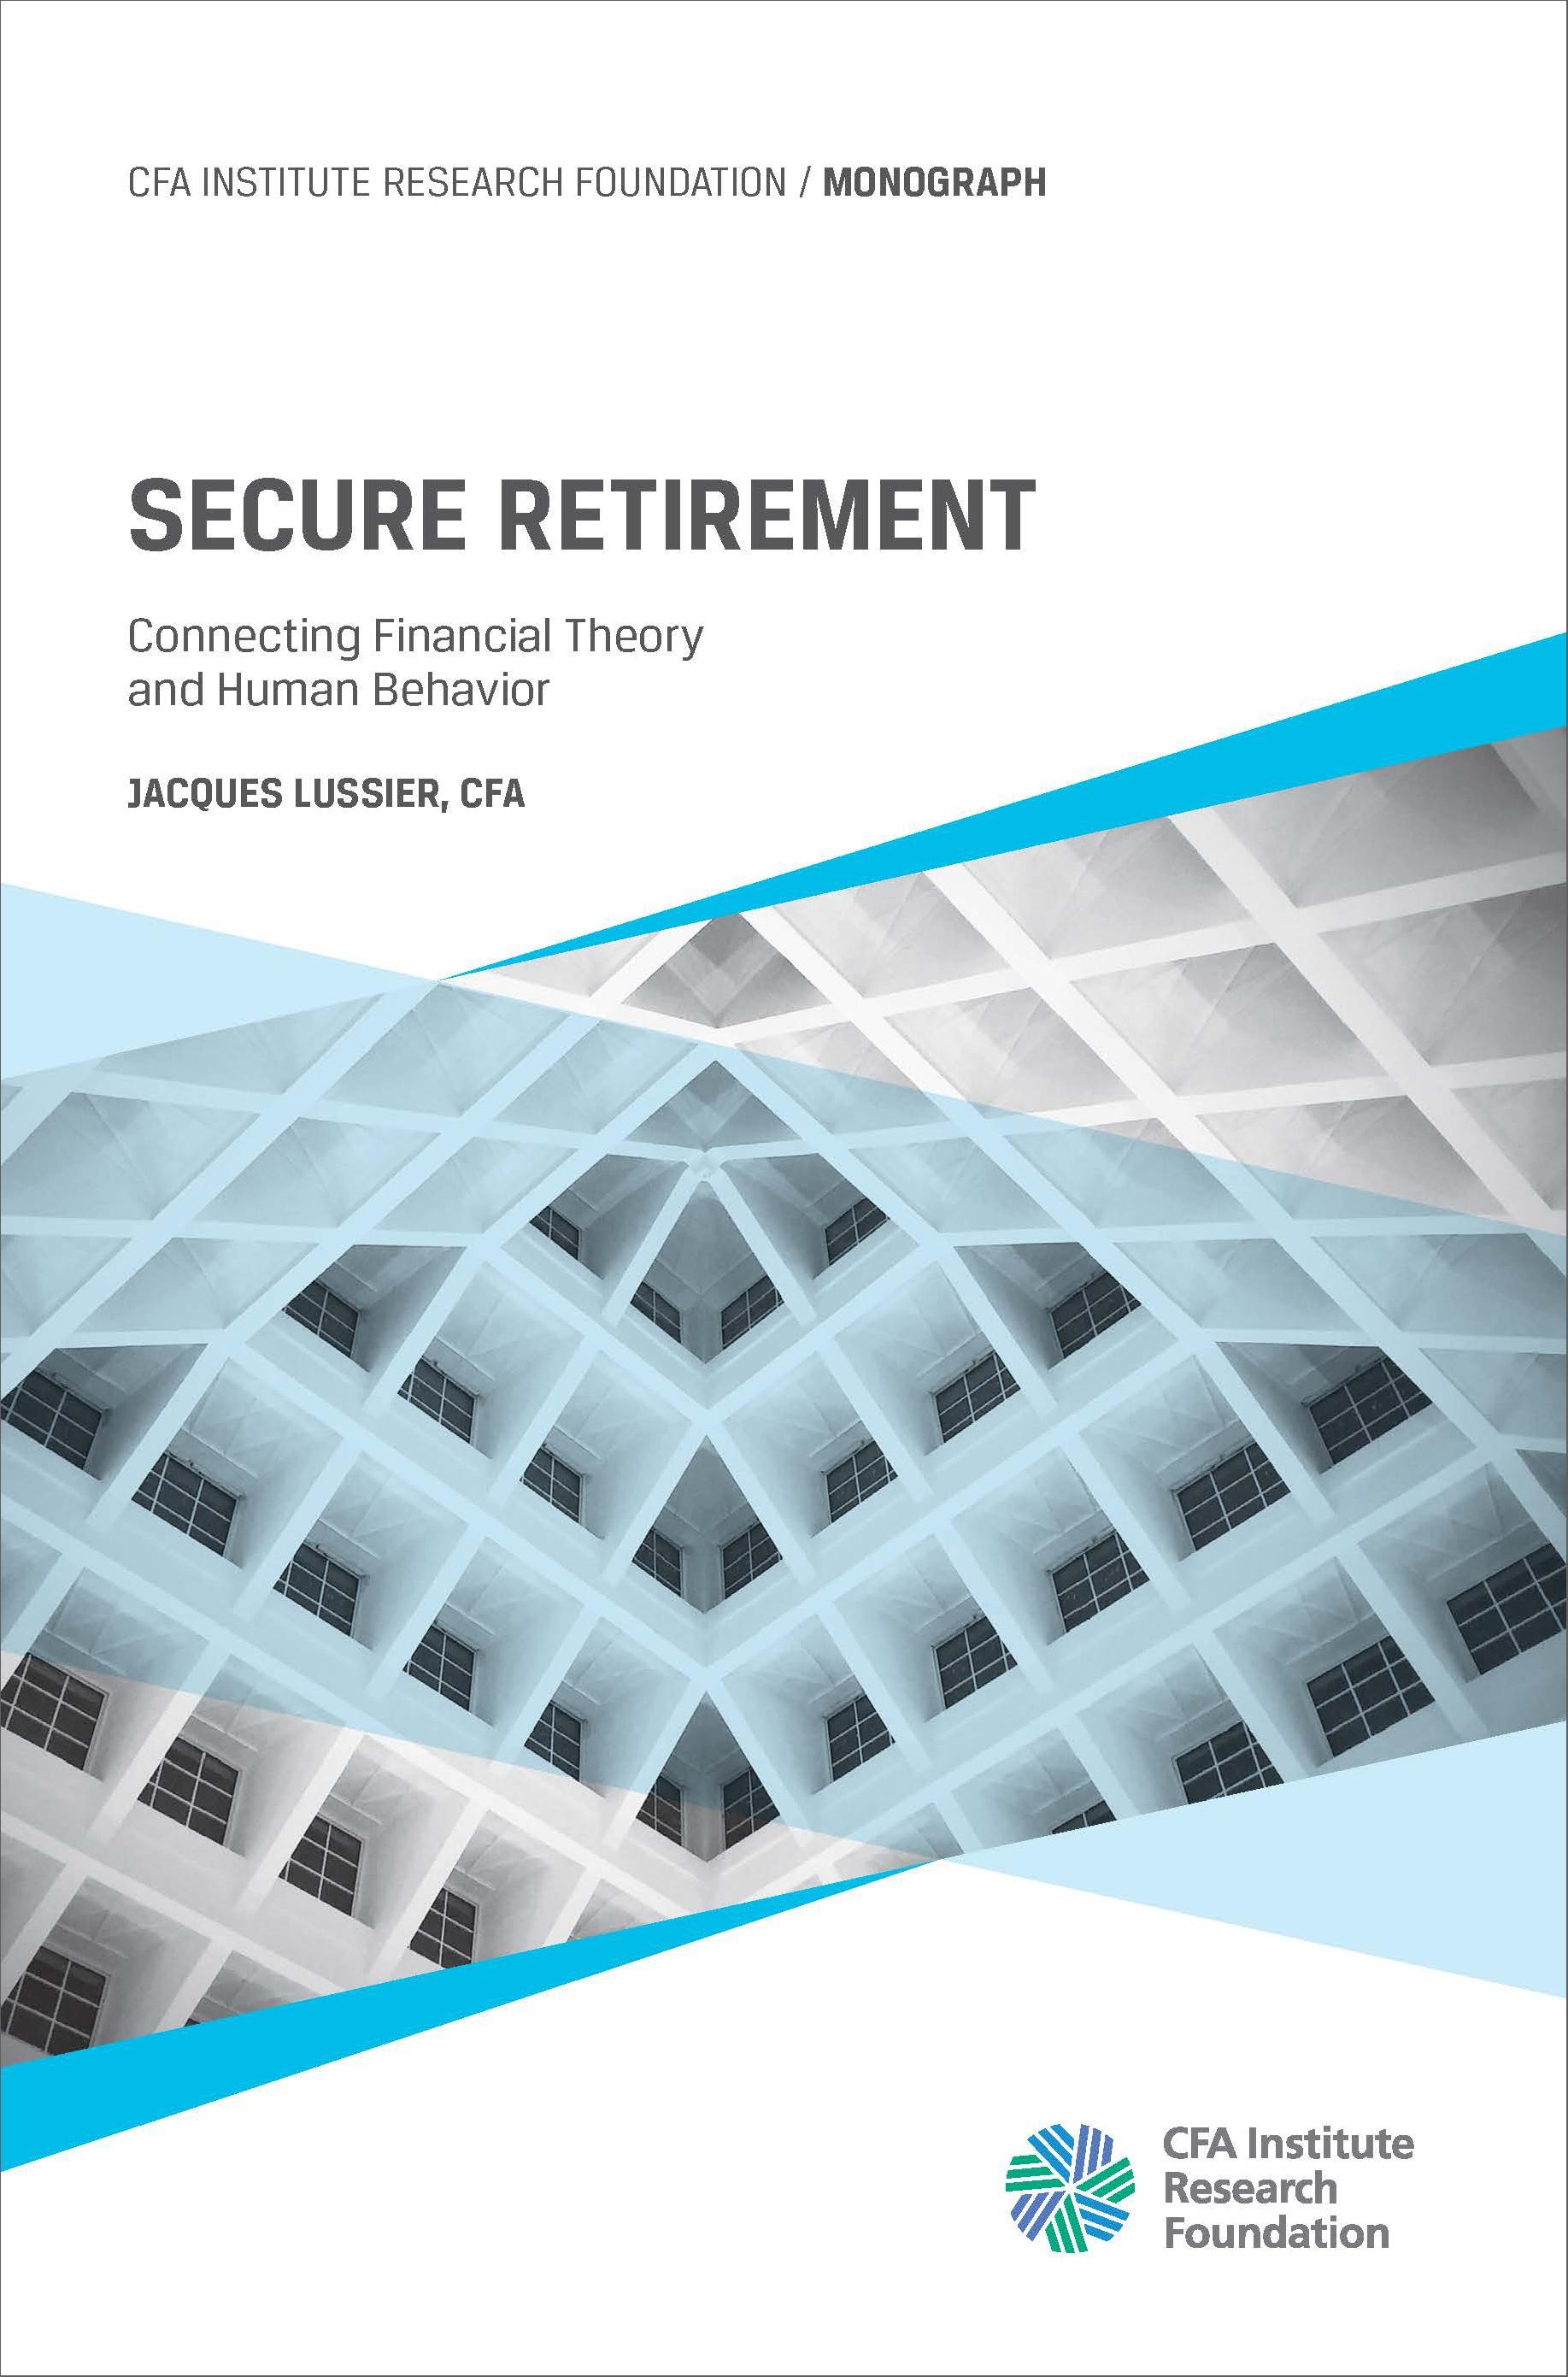 2020_01_28_SecureRetirement_Cover_JacquesLussier.jpg